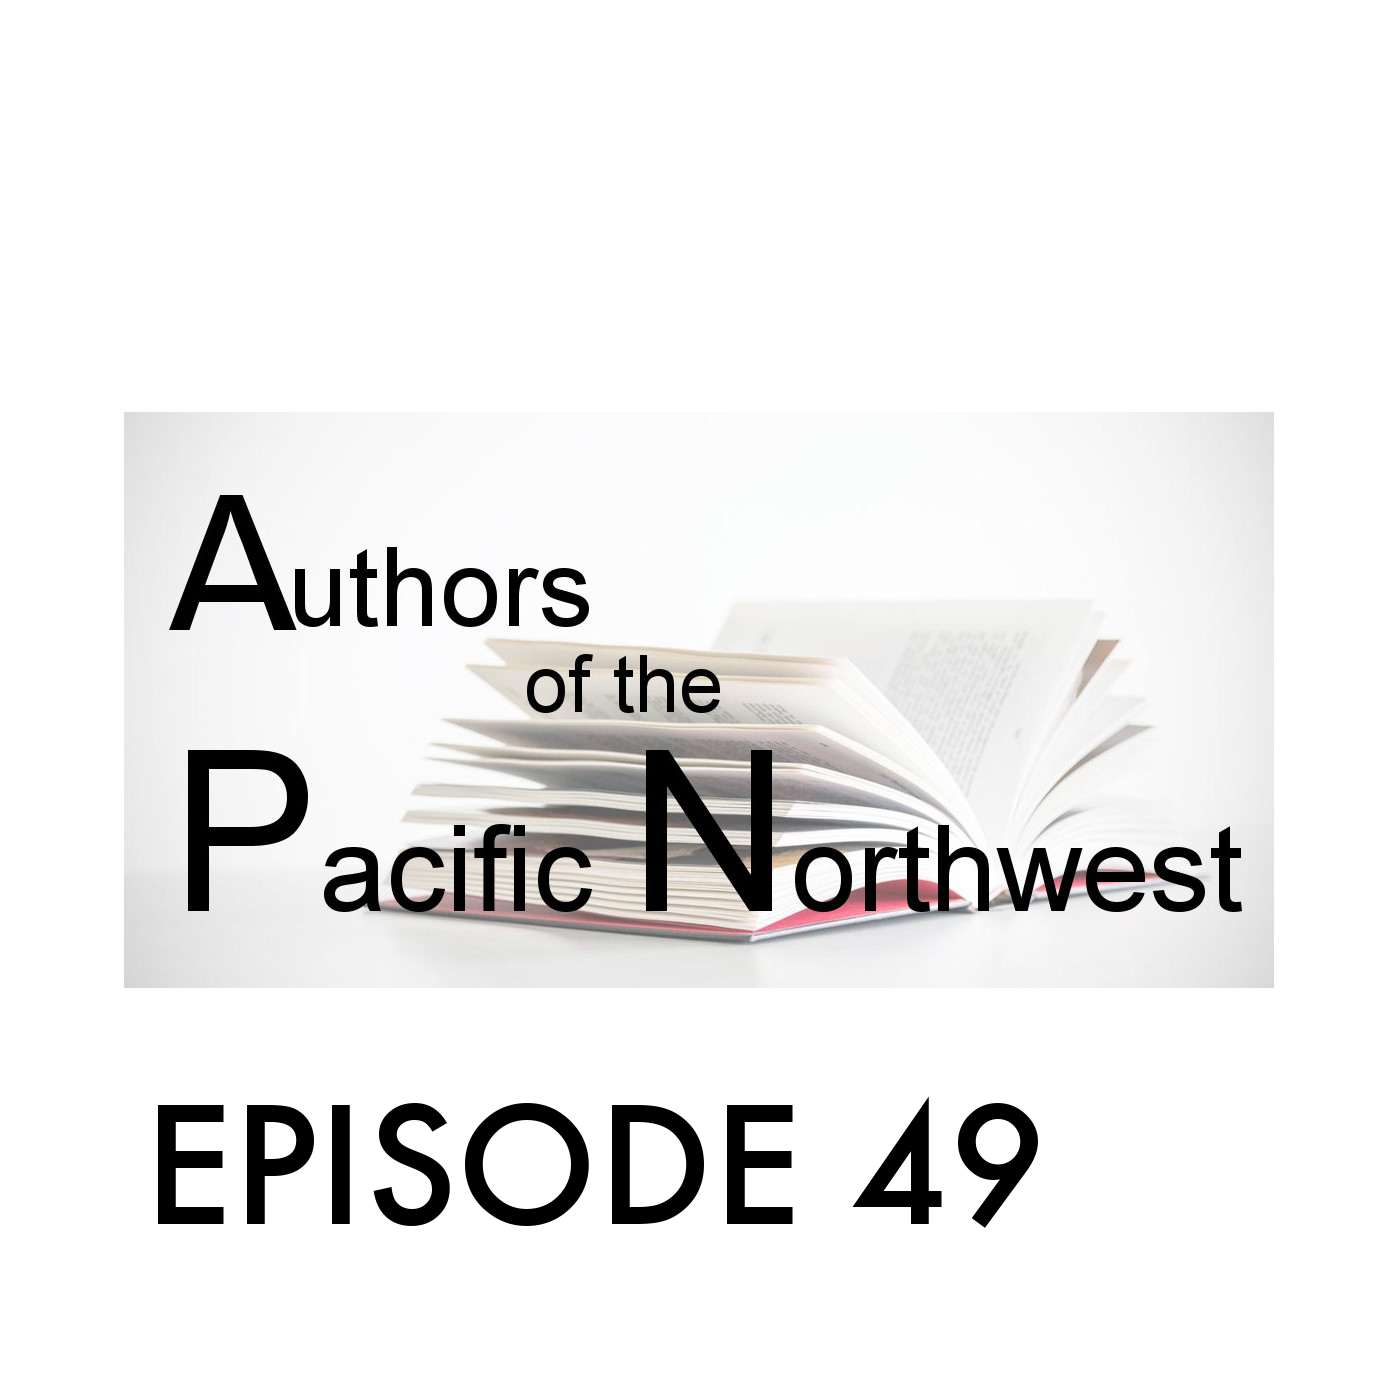 Episode 49: LeeAnn McLennan; Portland, Oregon's Fantasy & Sci-Fi Author from Not a Pipe Publishing